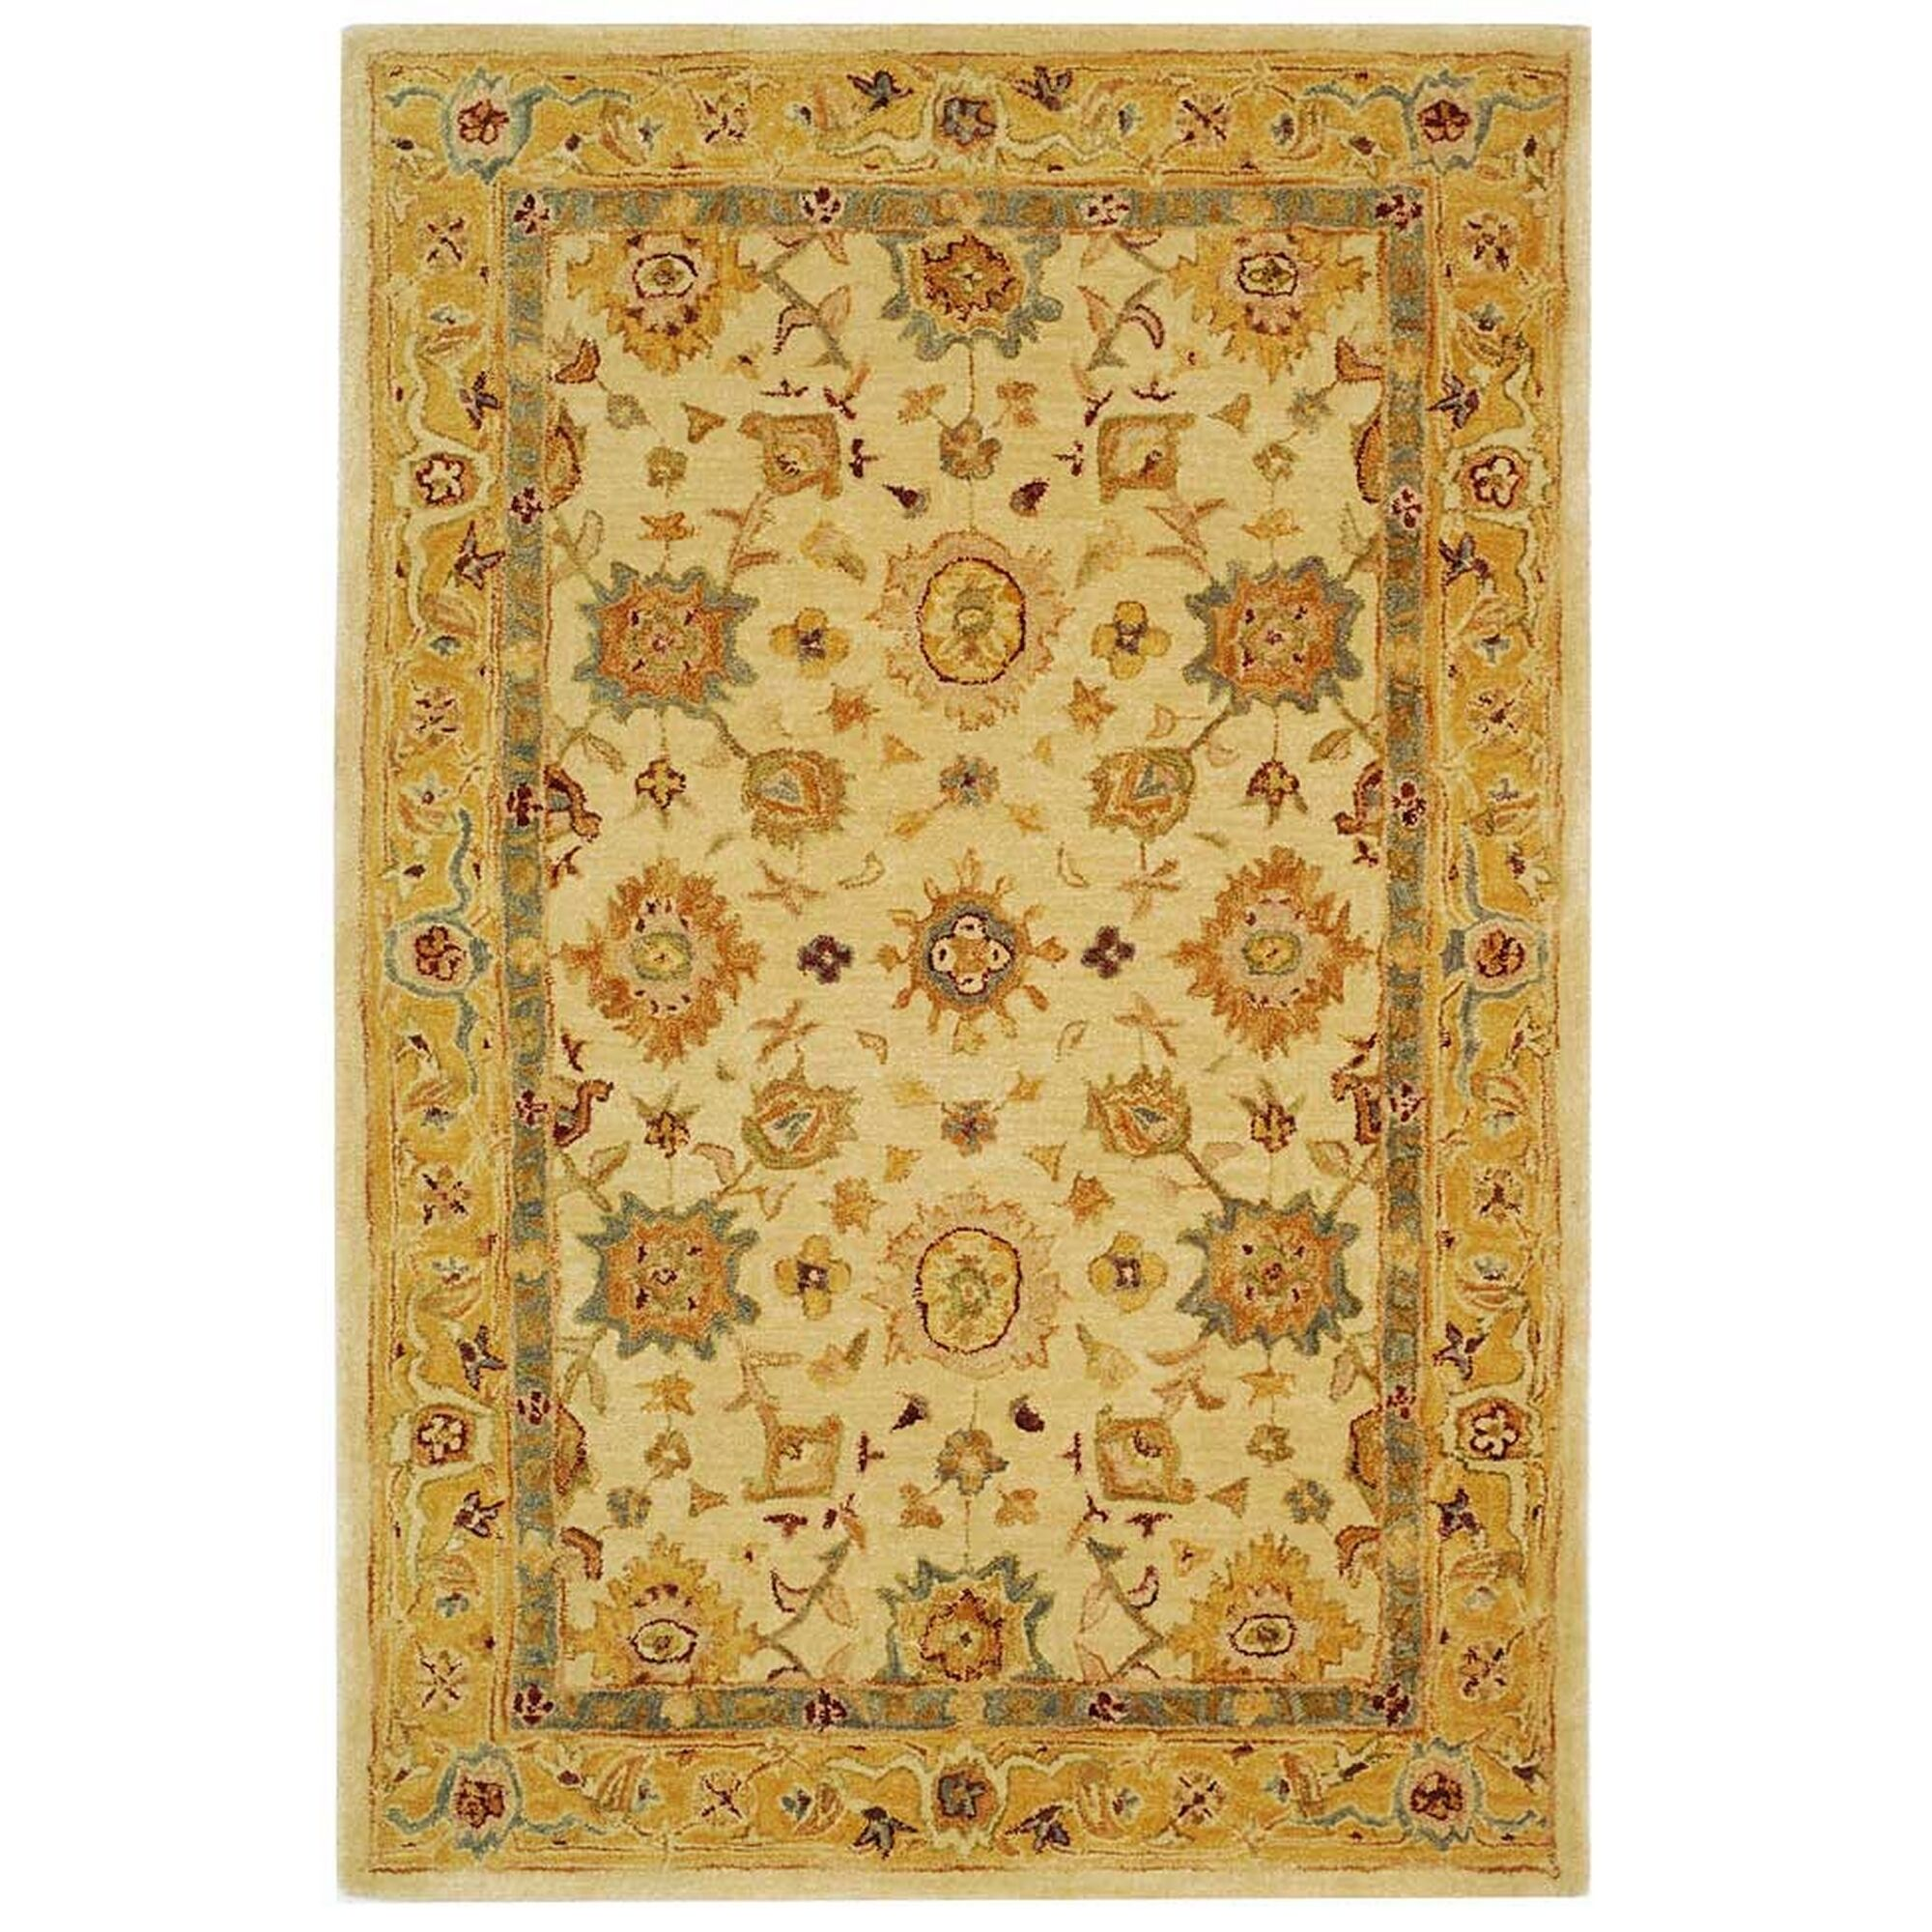 Pritchard Hand-Woven Wool Ivory/Gold Area Rug Rug Size: Rectangle 4' x 6'